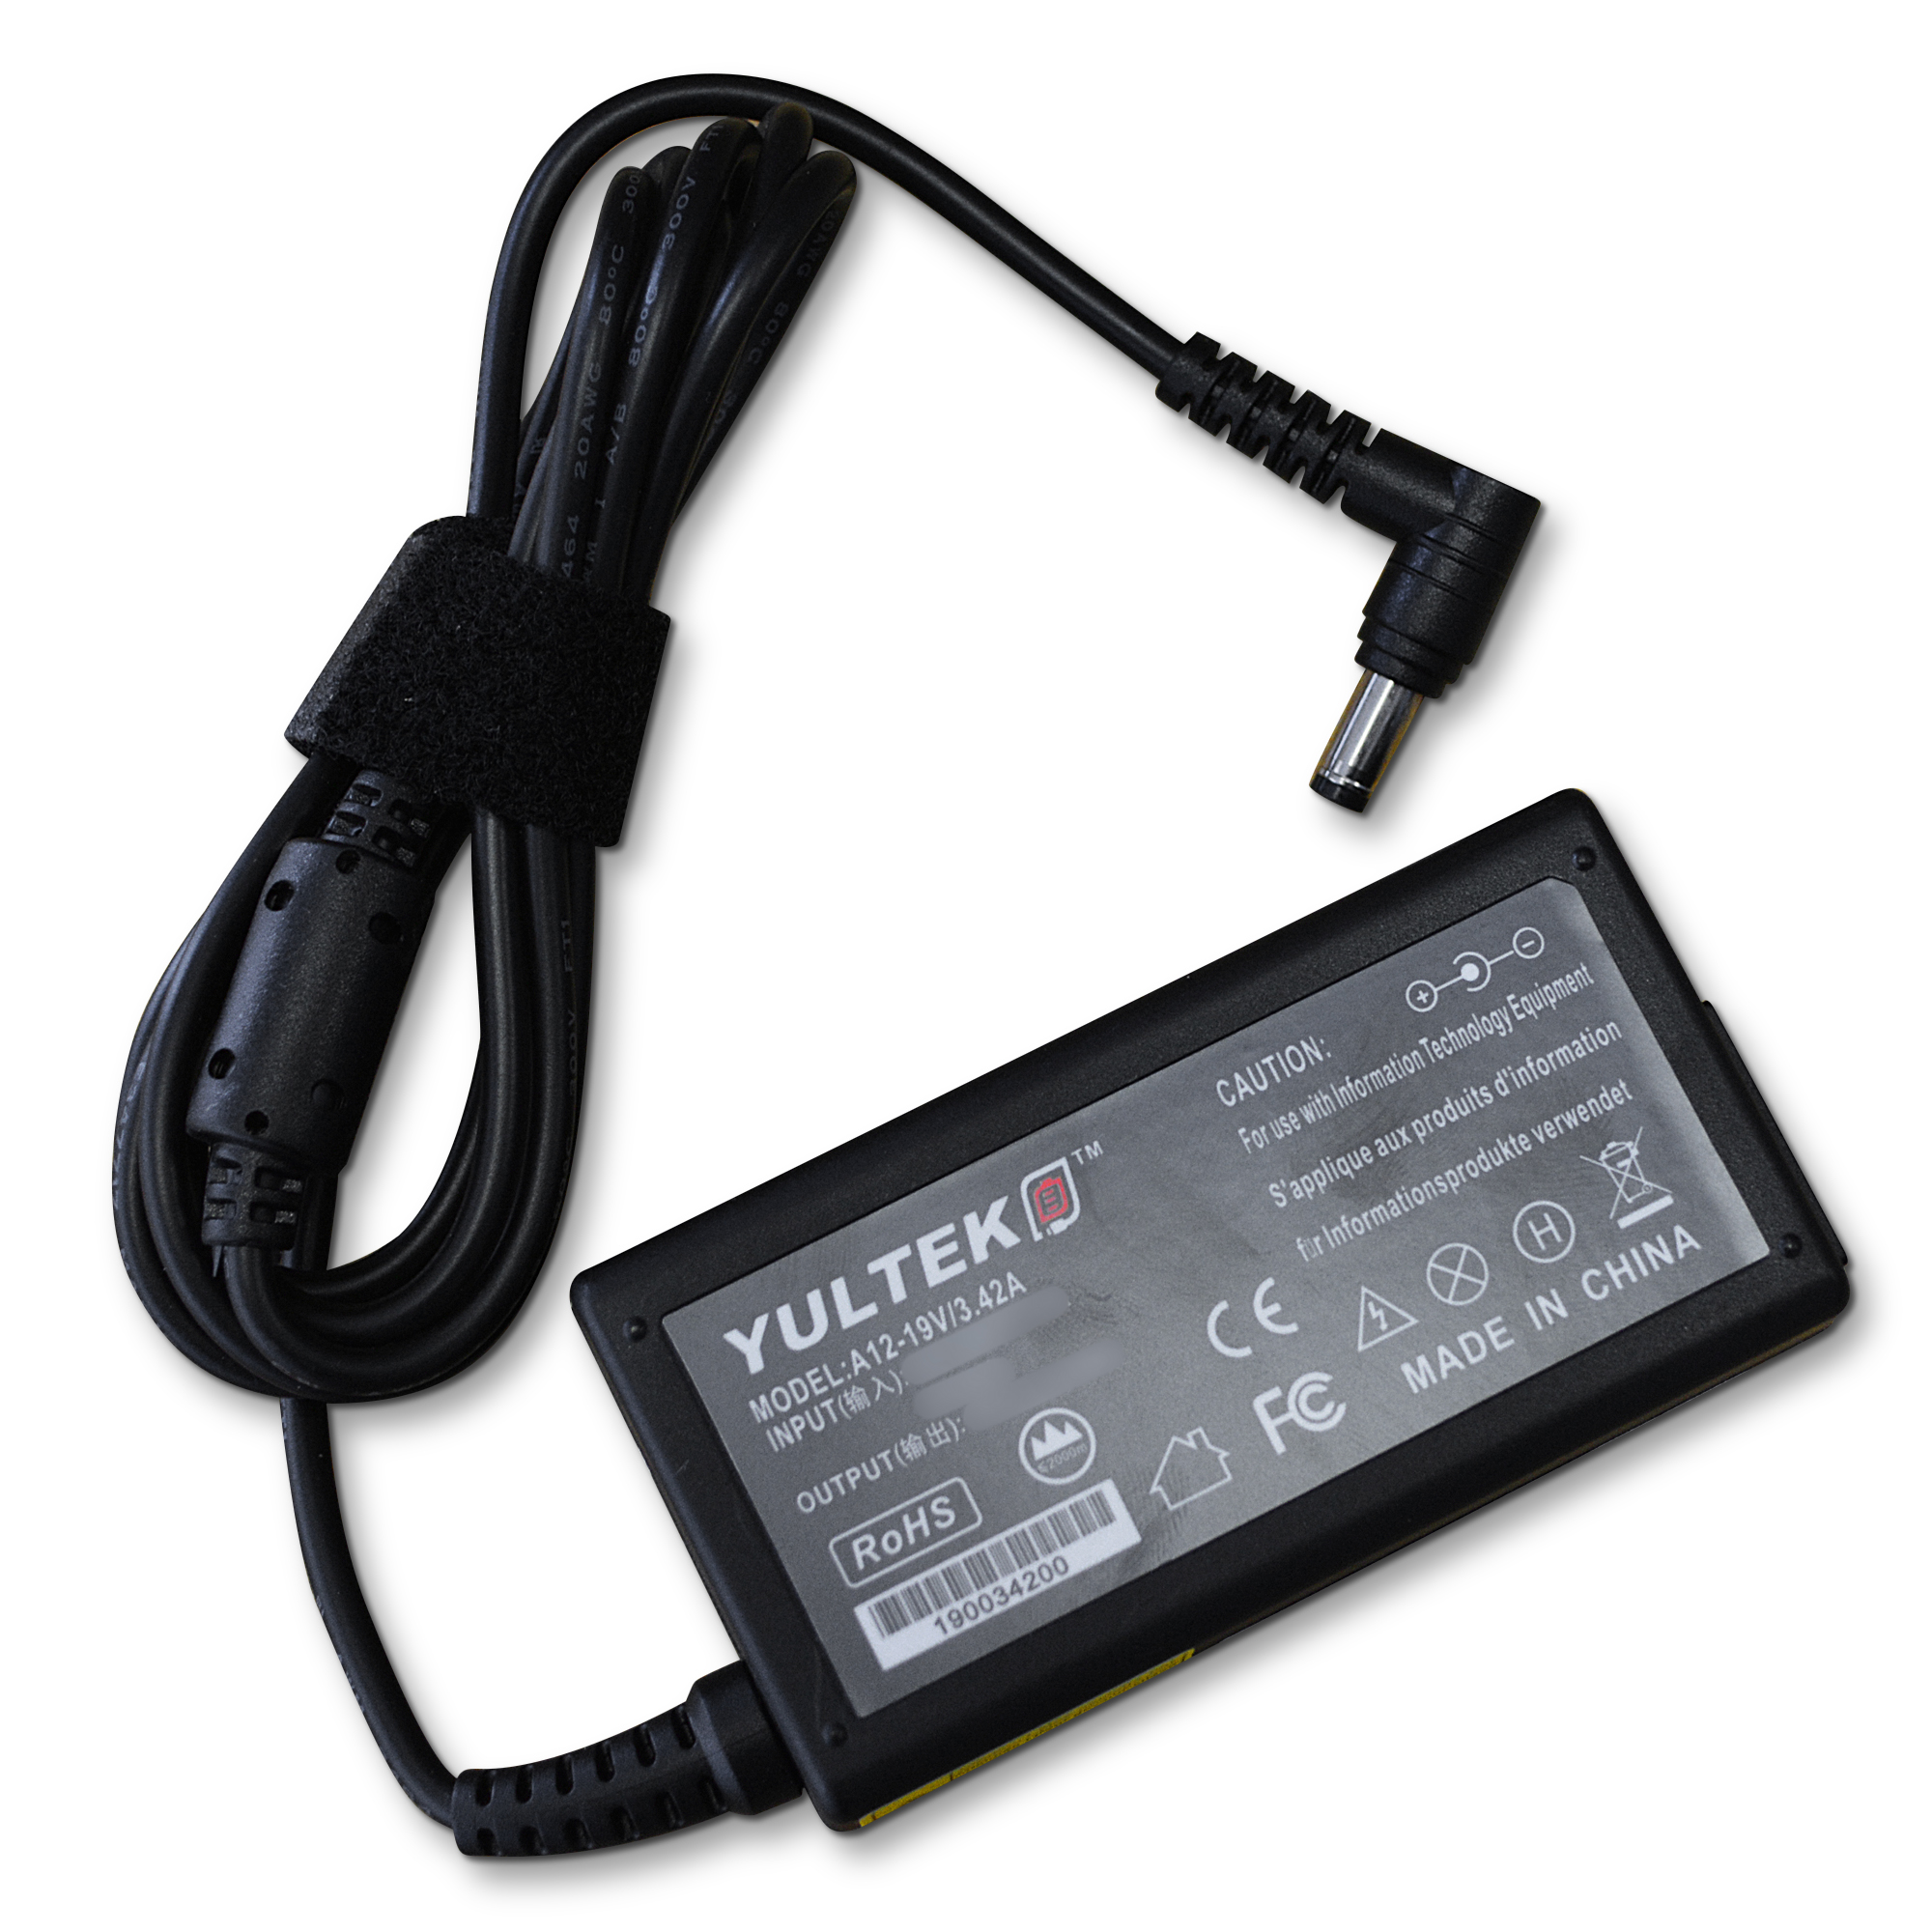 Fujitsu-Siemens Part Number WTS:25.10181.031 Laptop Charger